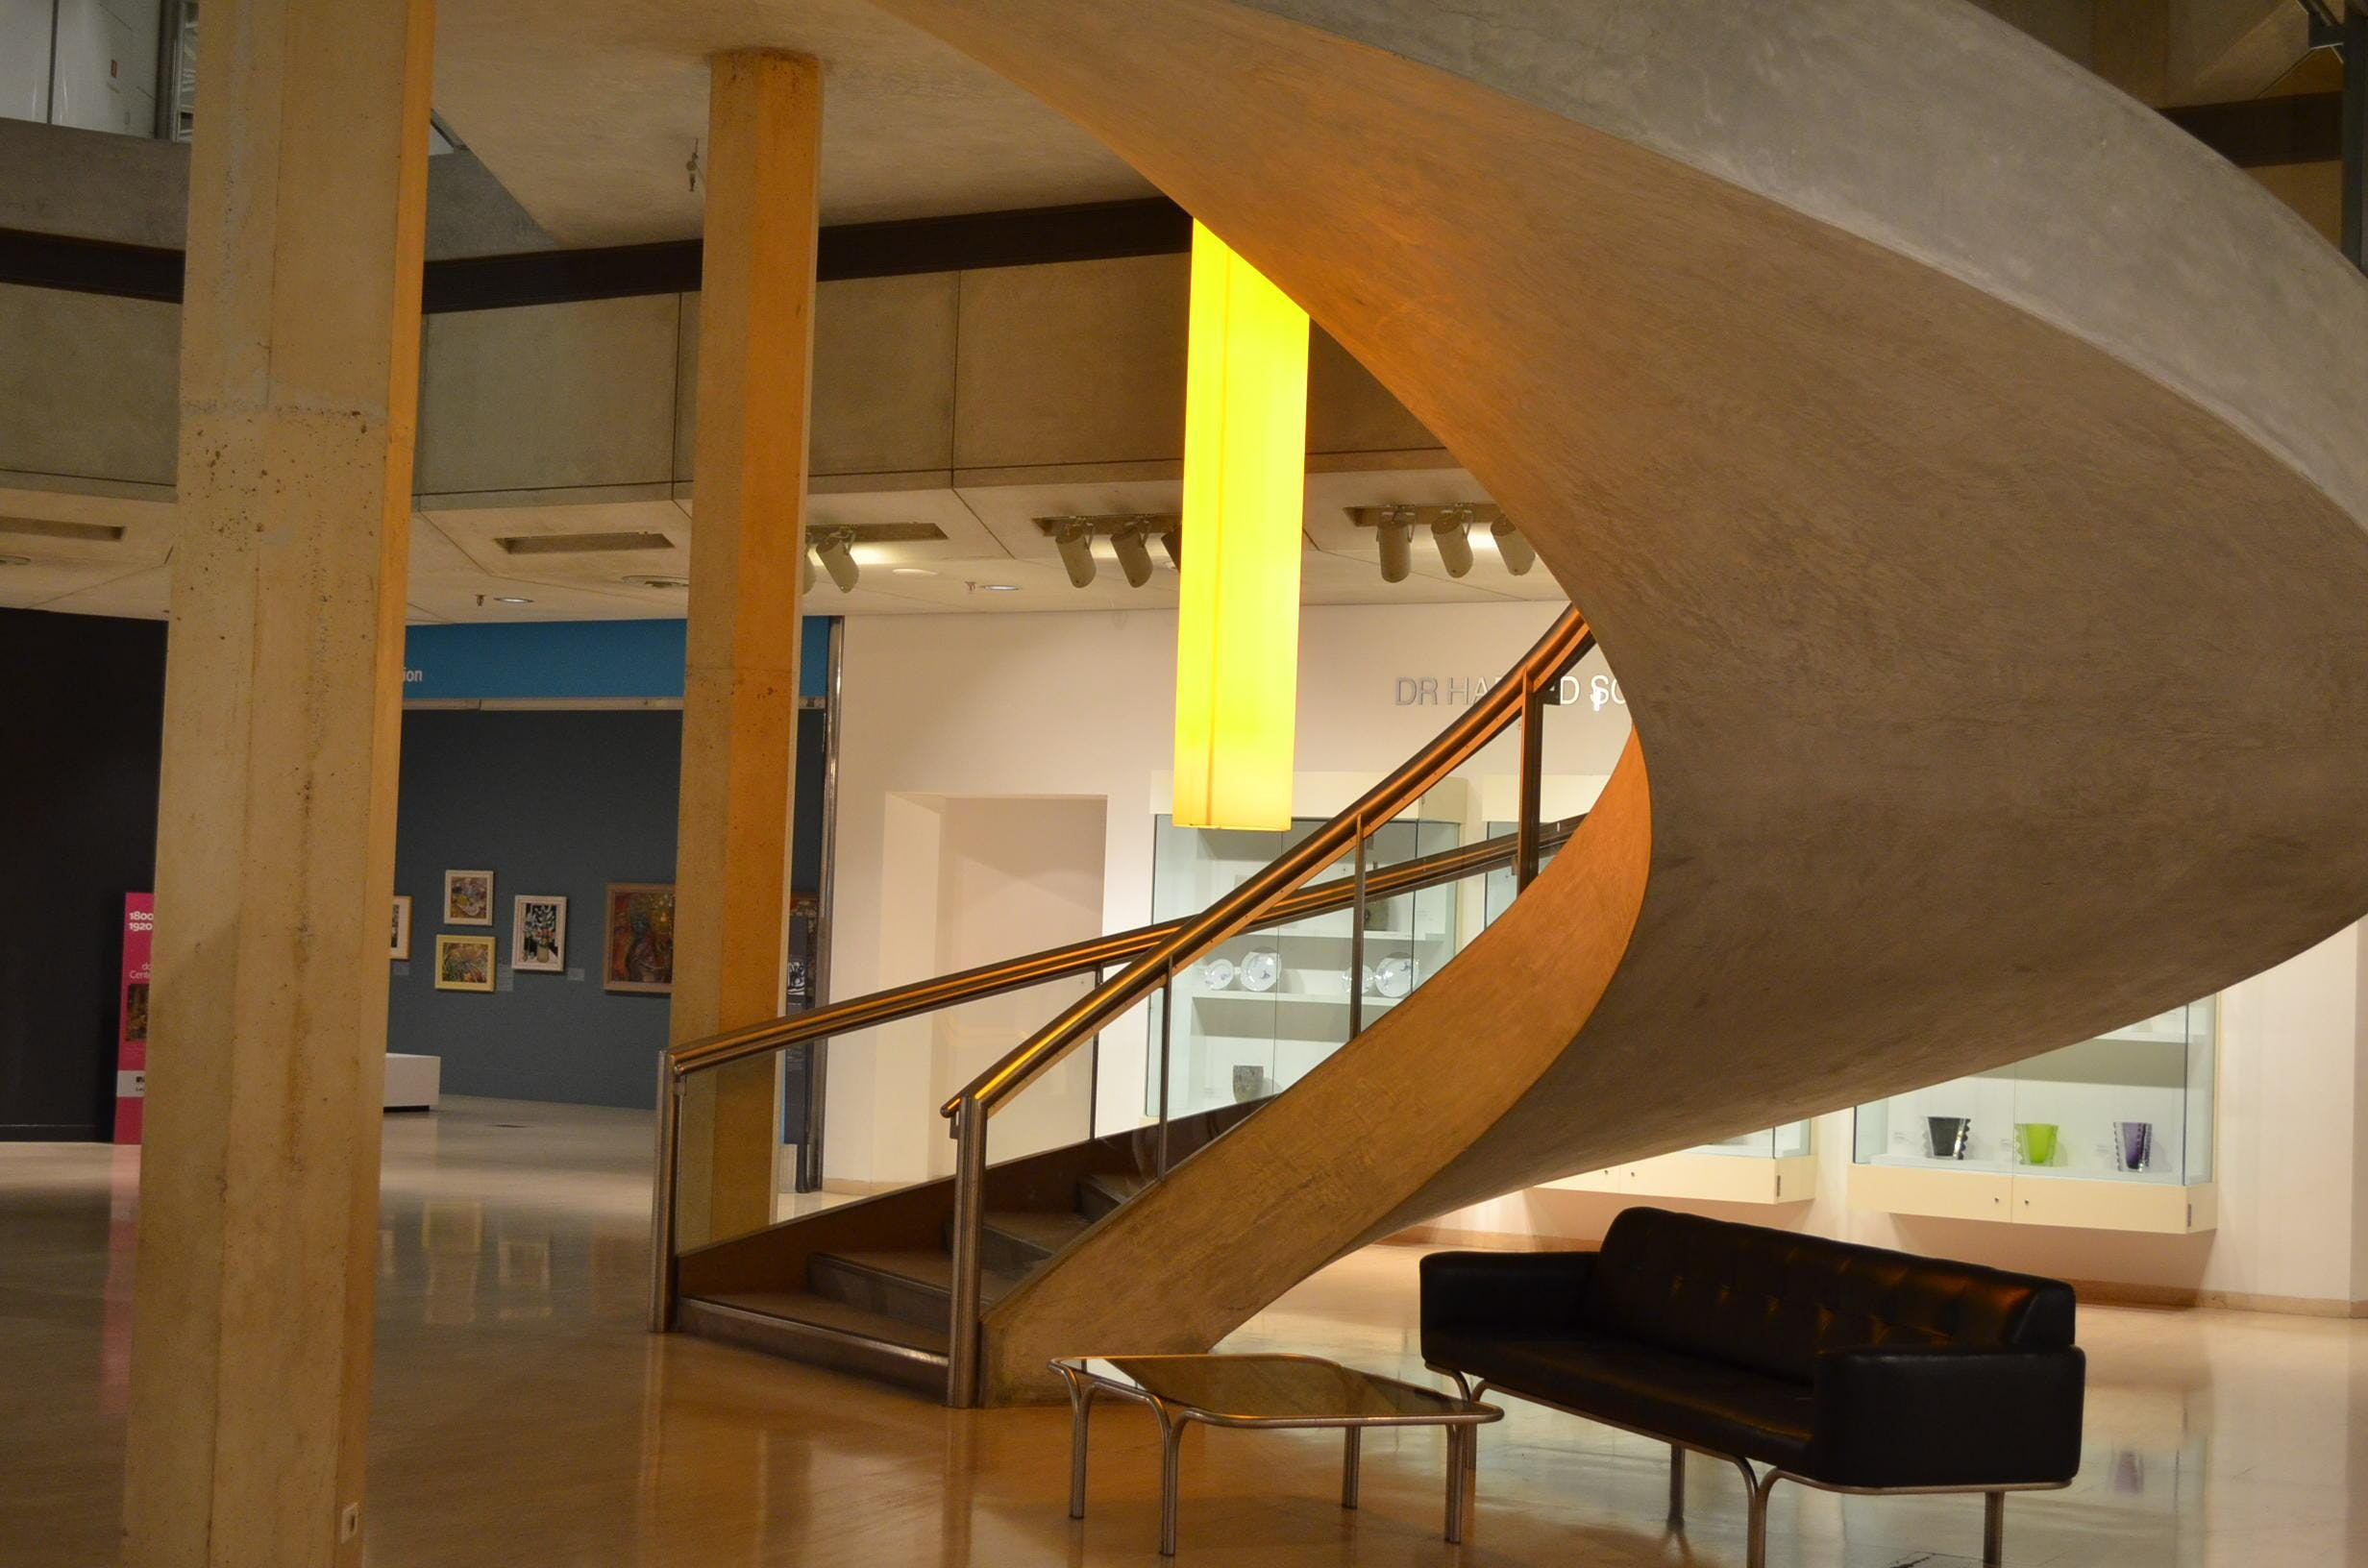 Open house perth art gallery of western australia architecture tours 10 nov 2018